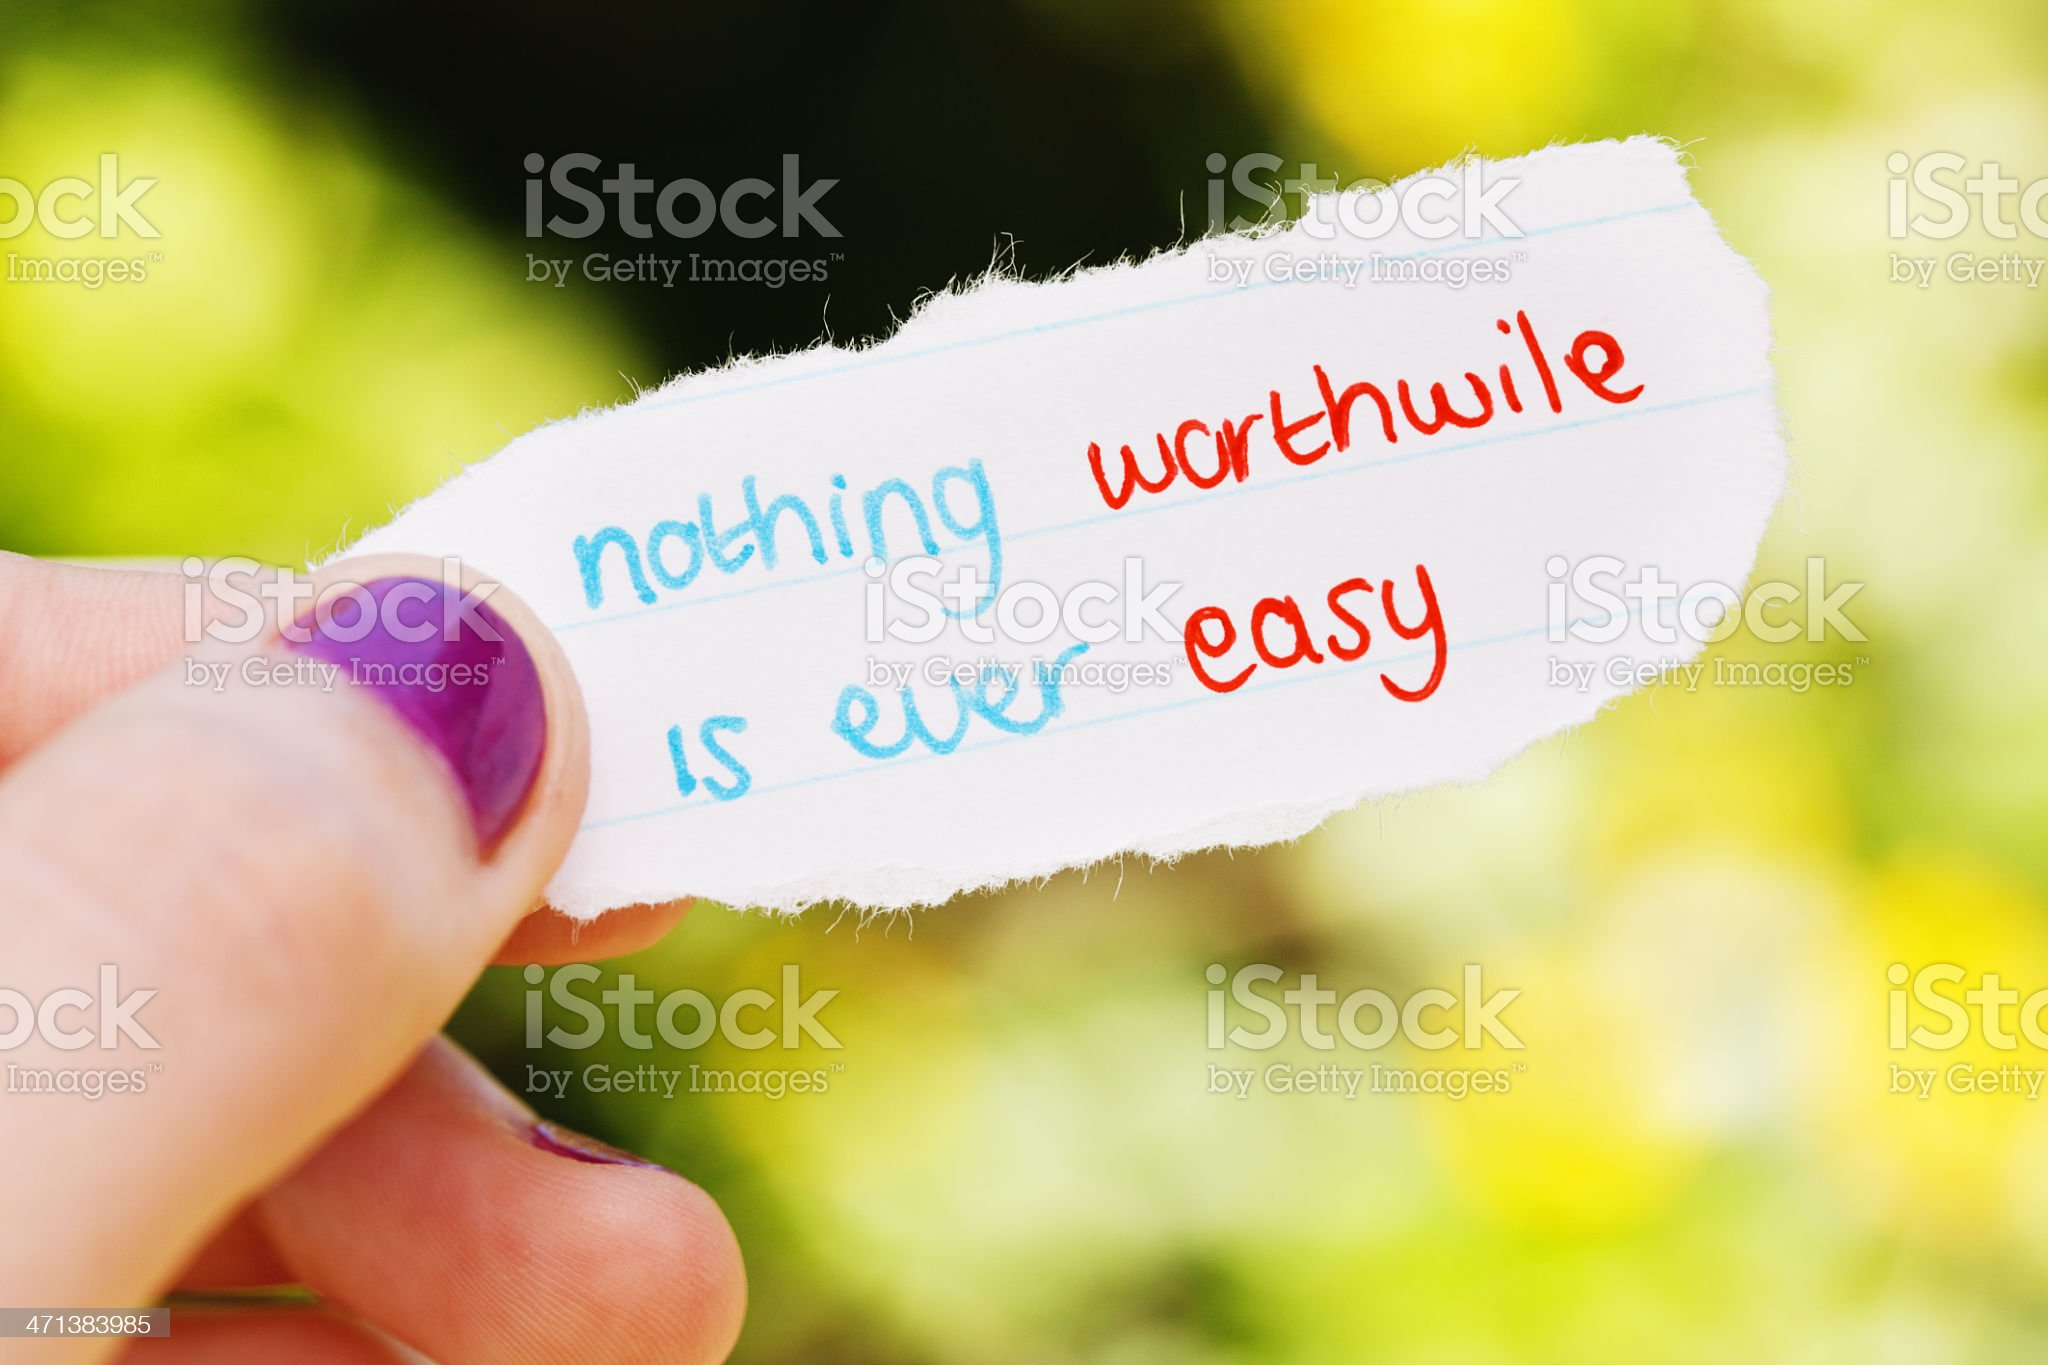 Nothing worthwhile is ever easy says hand-drawn note royalty-free stock photo